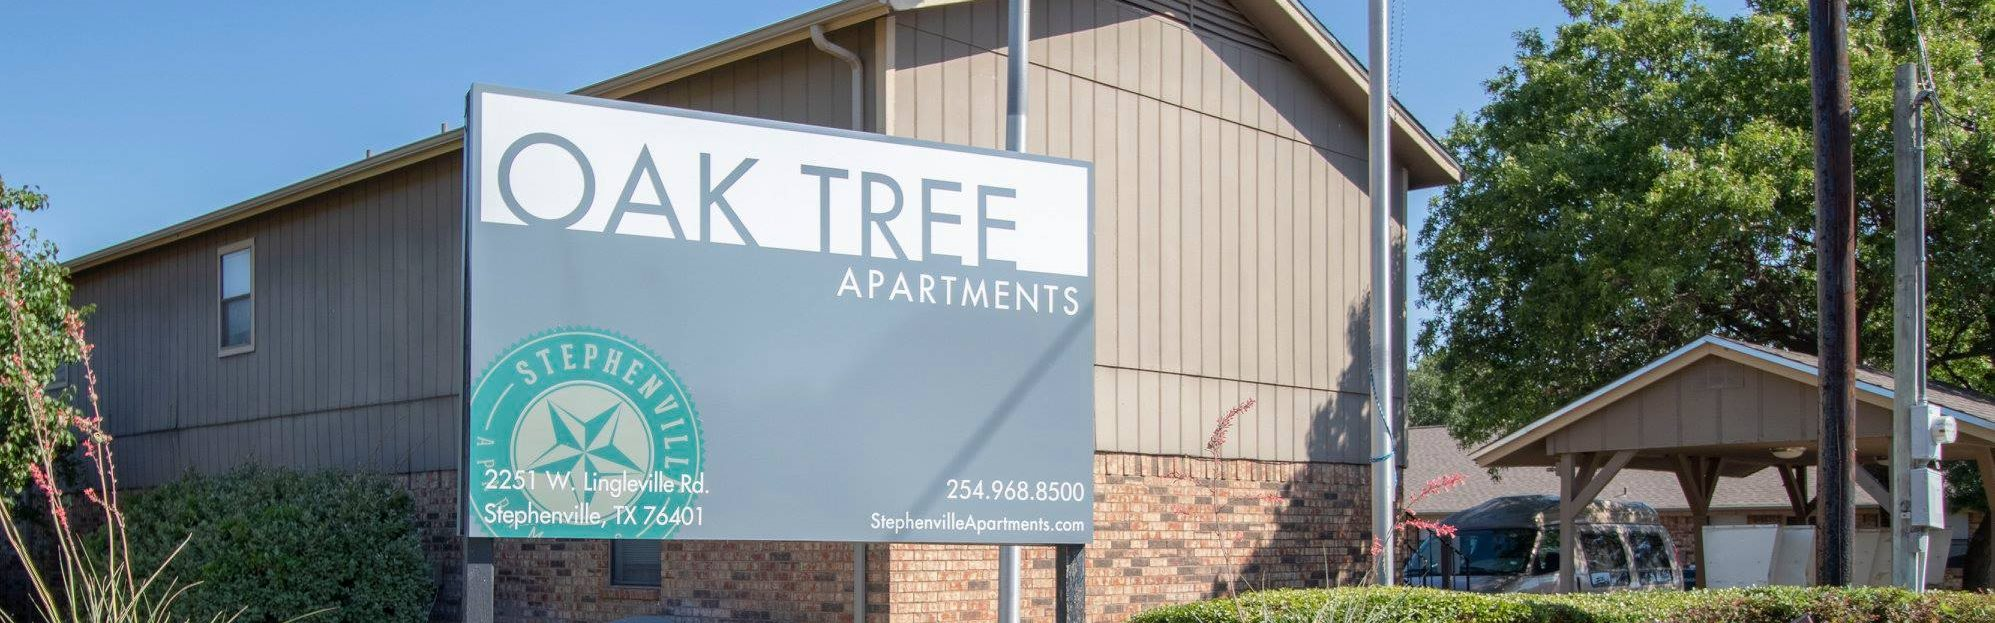 Oak Tree Apartments in Stephenville TX